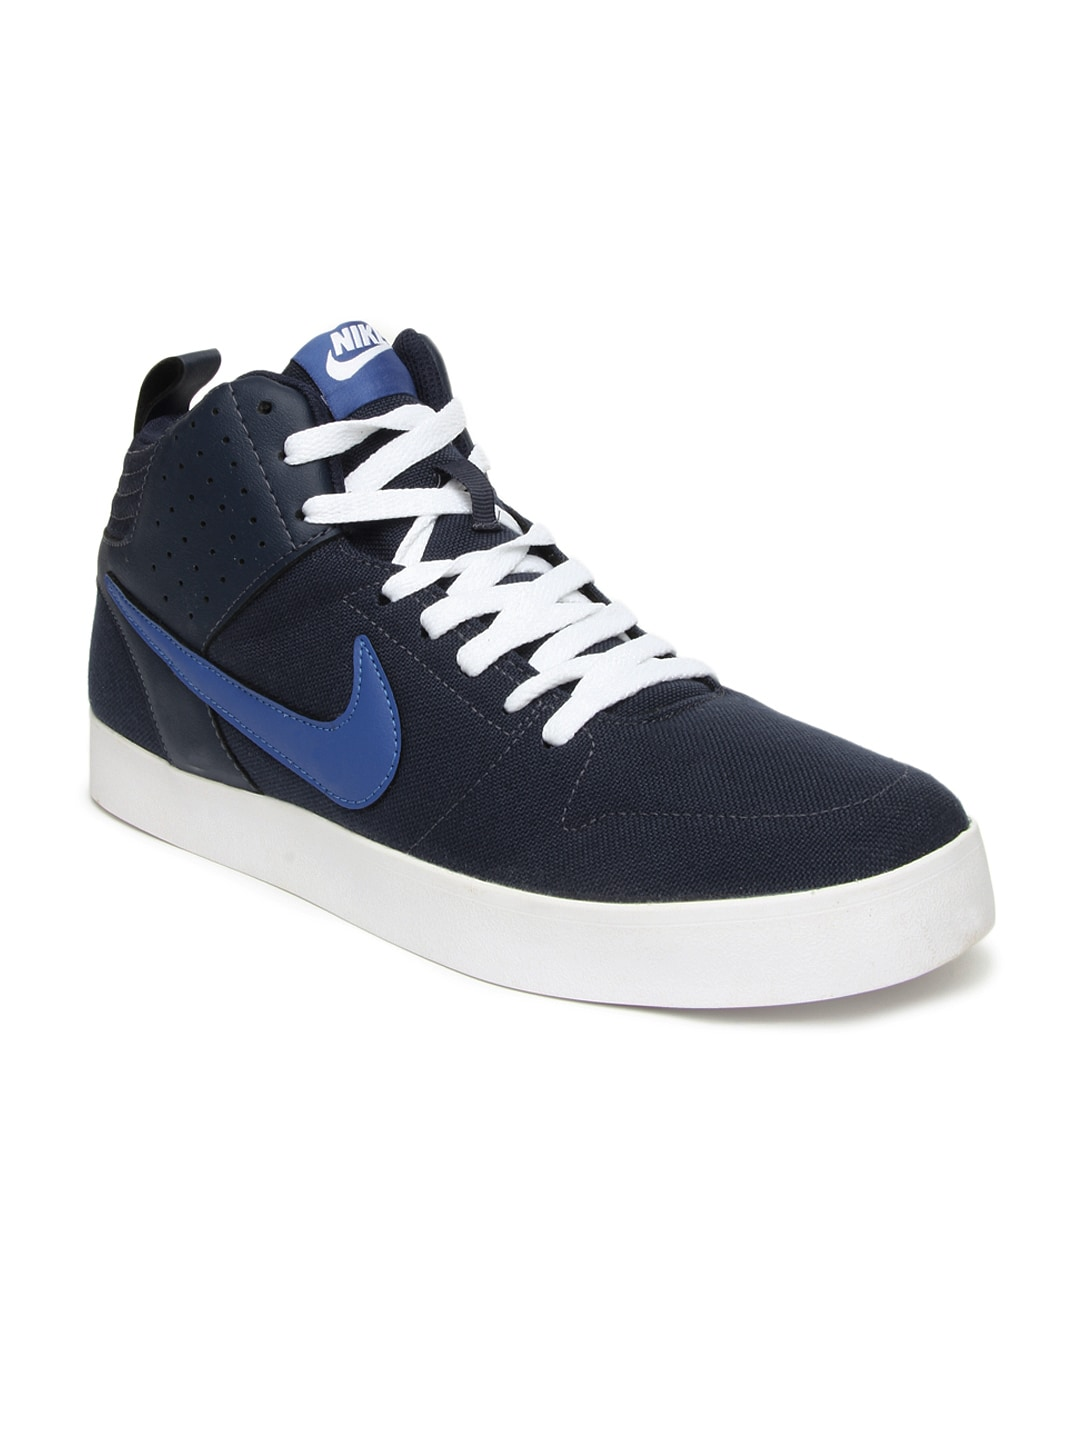 Buy Nike Navy Blue Liteforce III Mid In NSW Casual Shoes ...